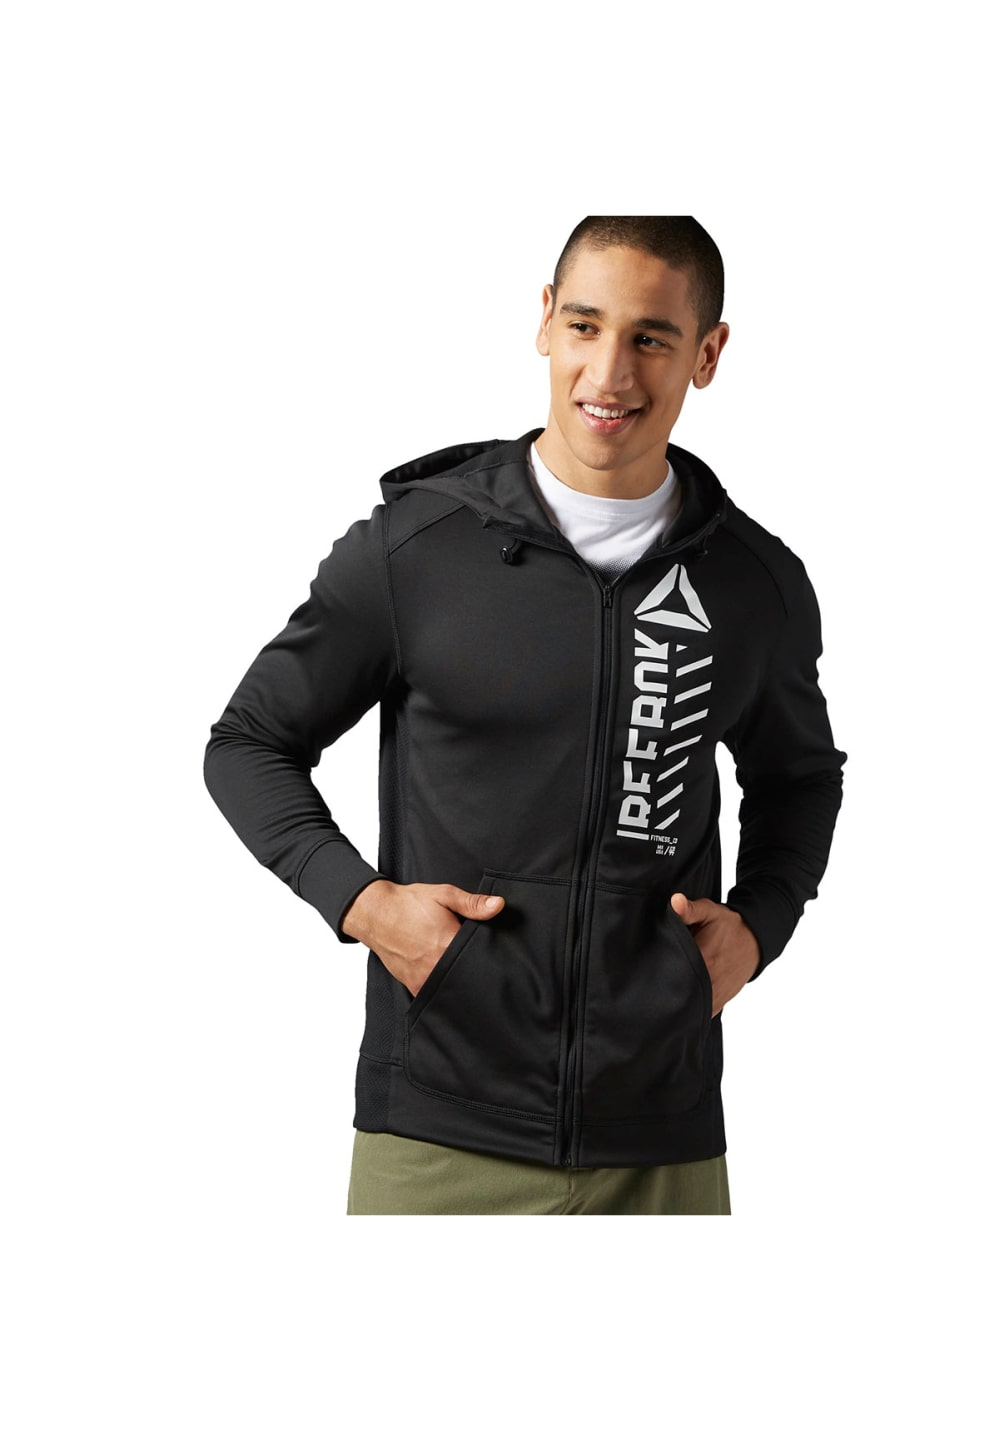 ea705728fc Reebok Workout Ready Warm Poly Fleece Fullzip - Sweatshirts / Hoodies for  Men - Black